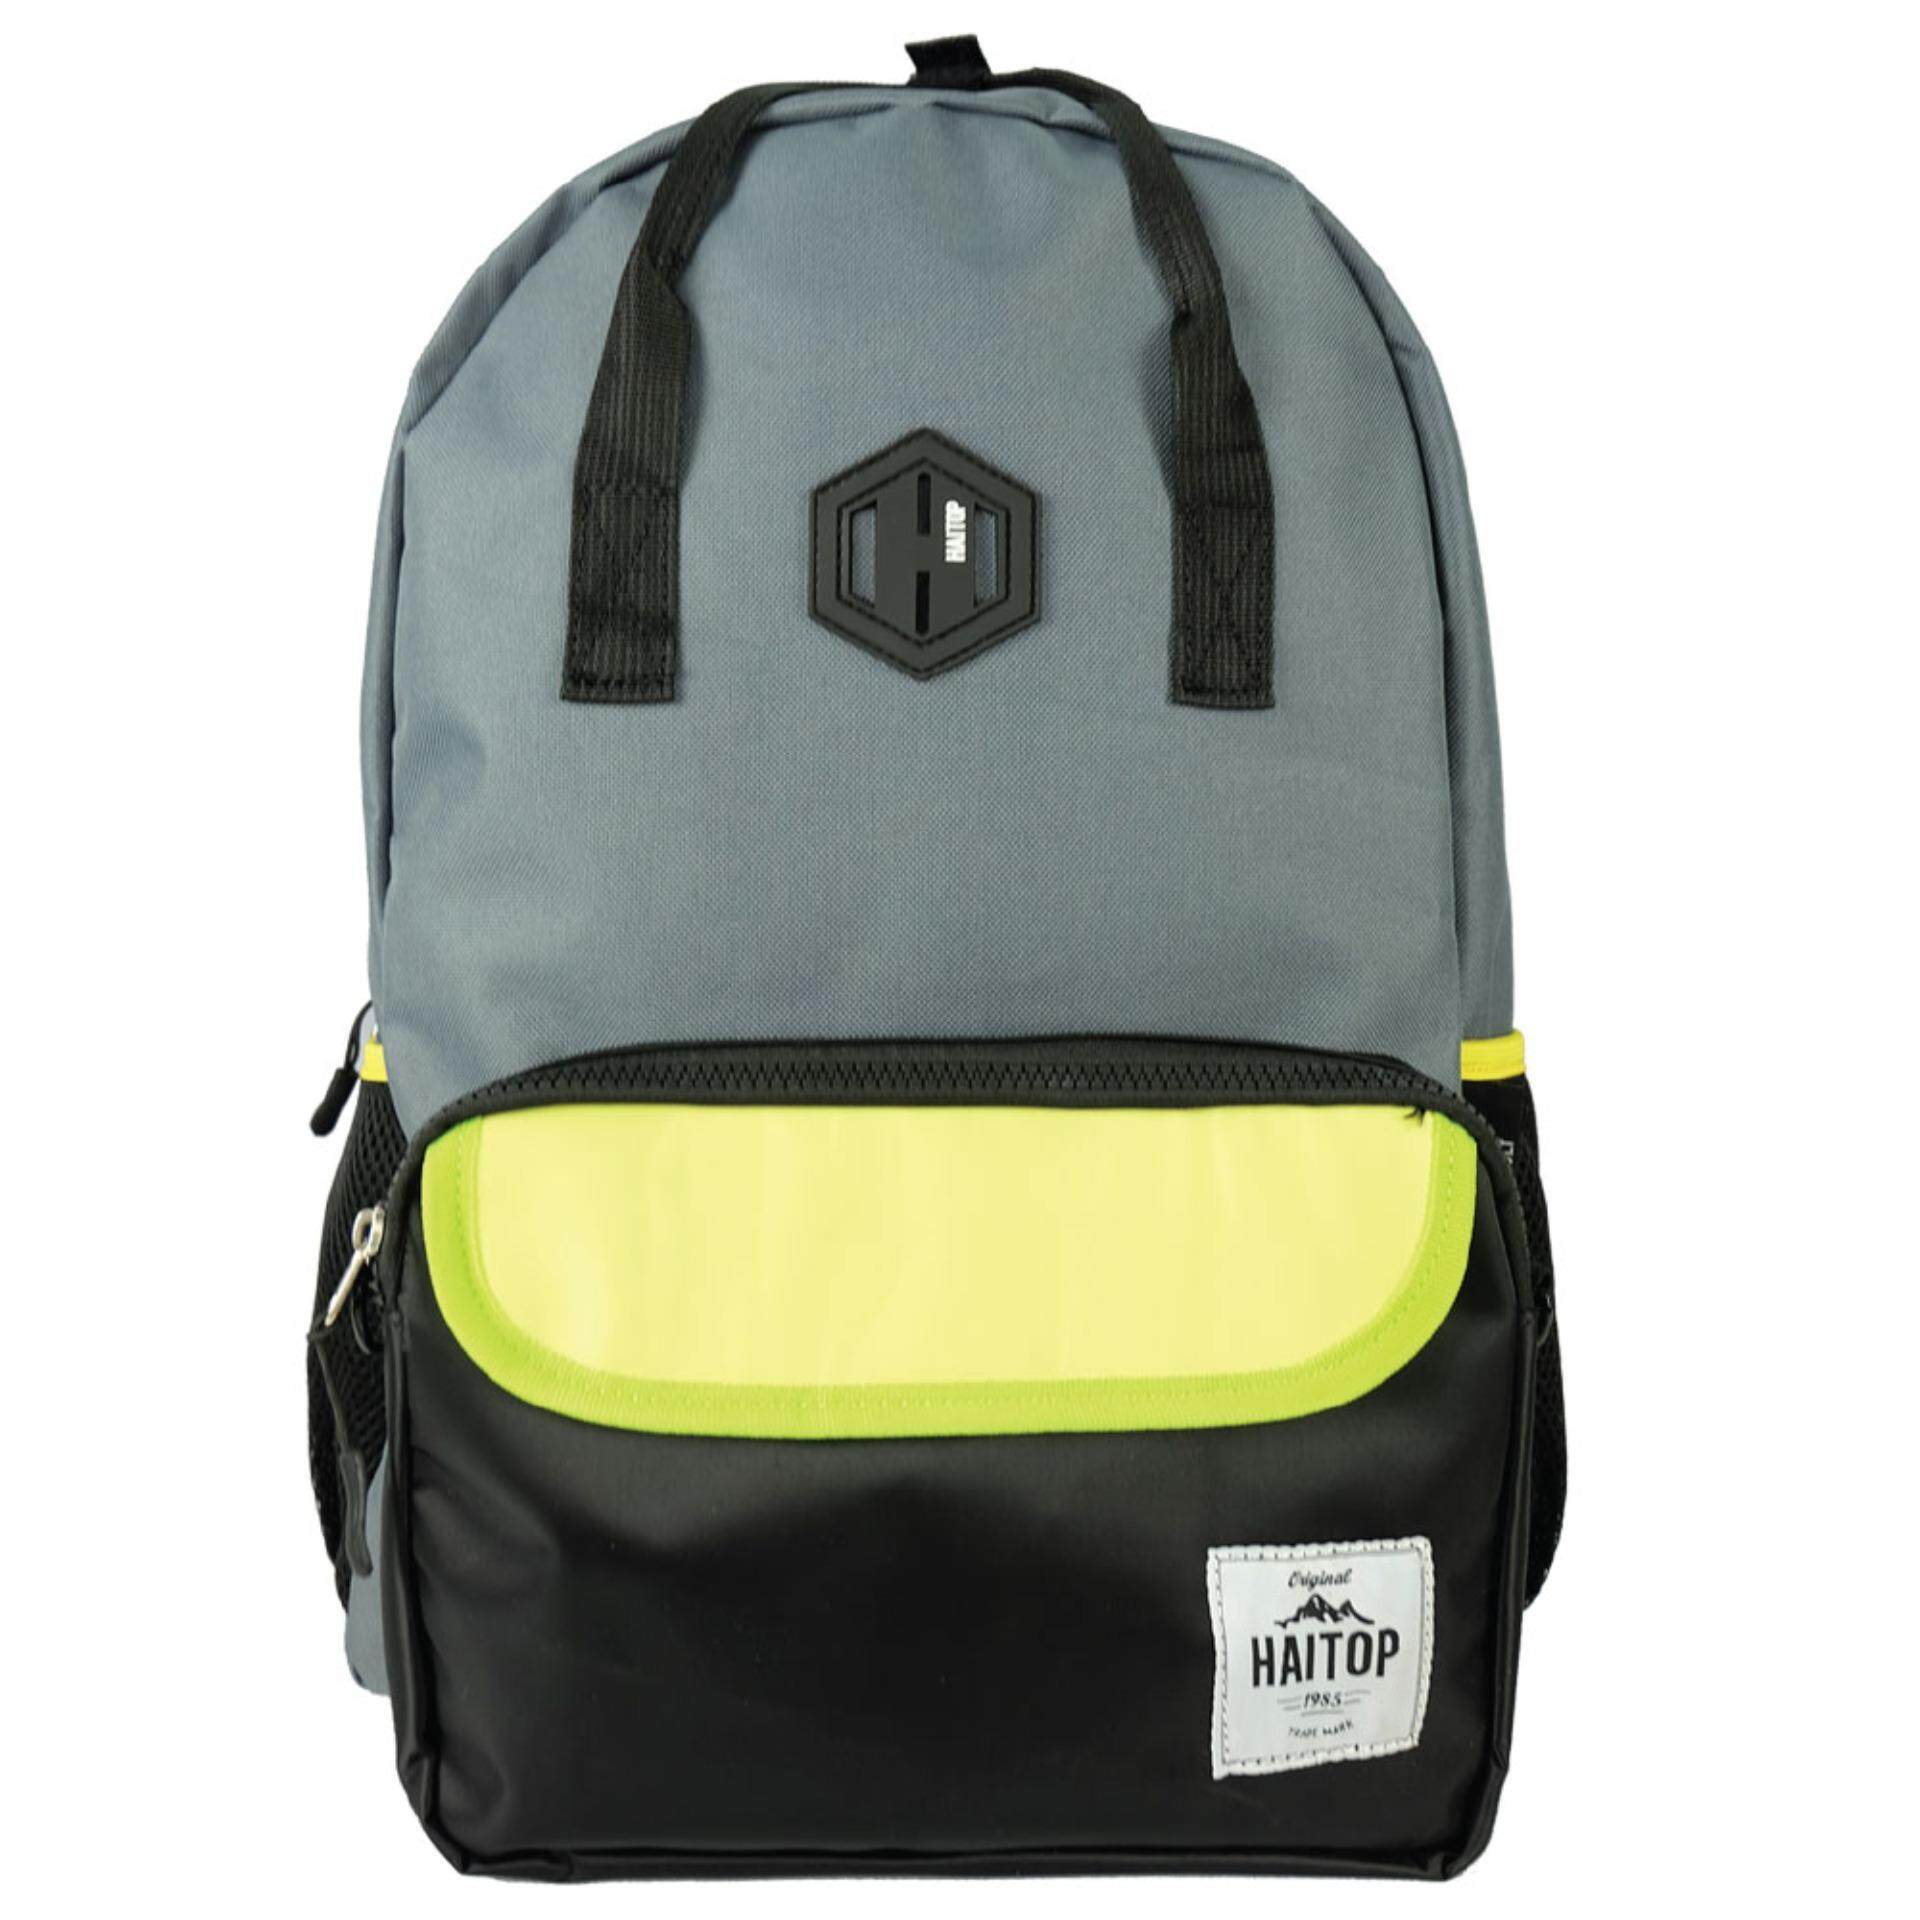 Haitop HB1655 18'' Two-Way Notebook Backpack (Grey/Black)